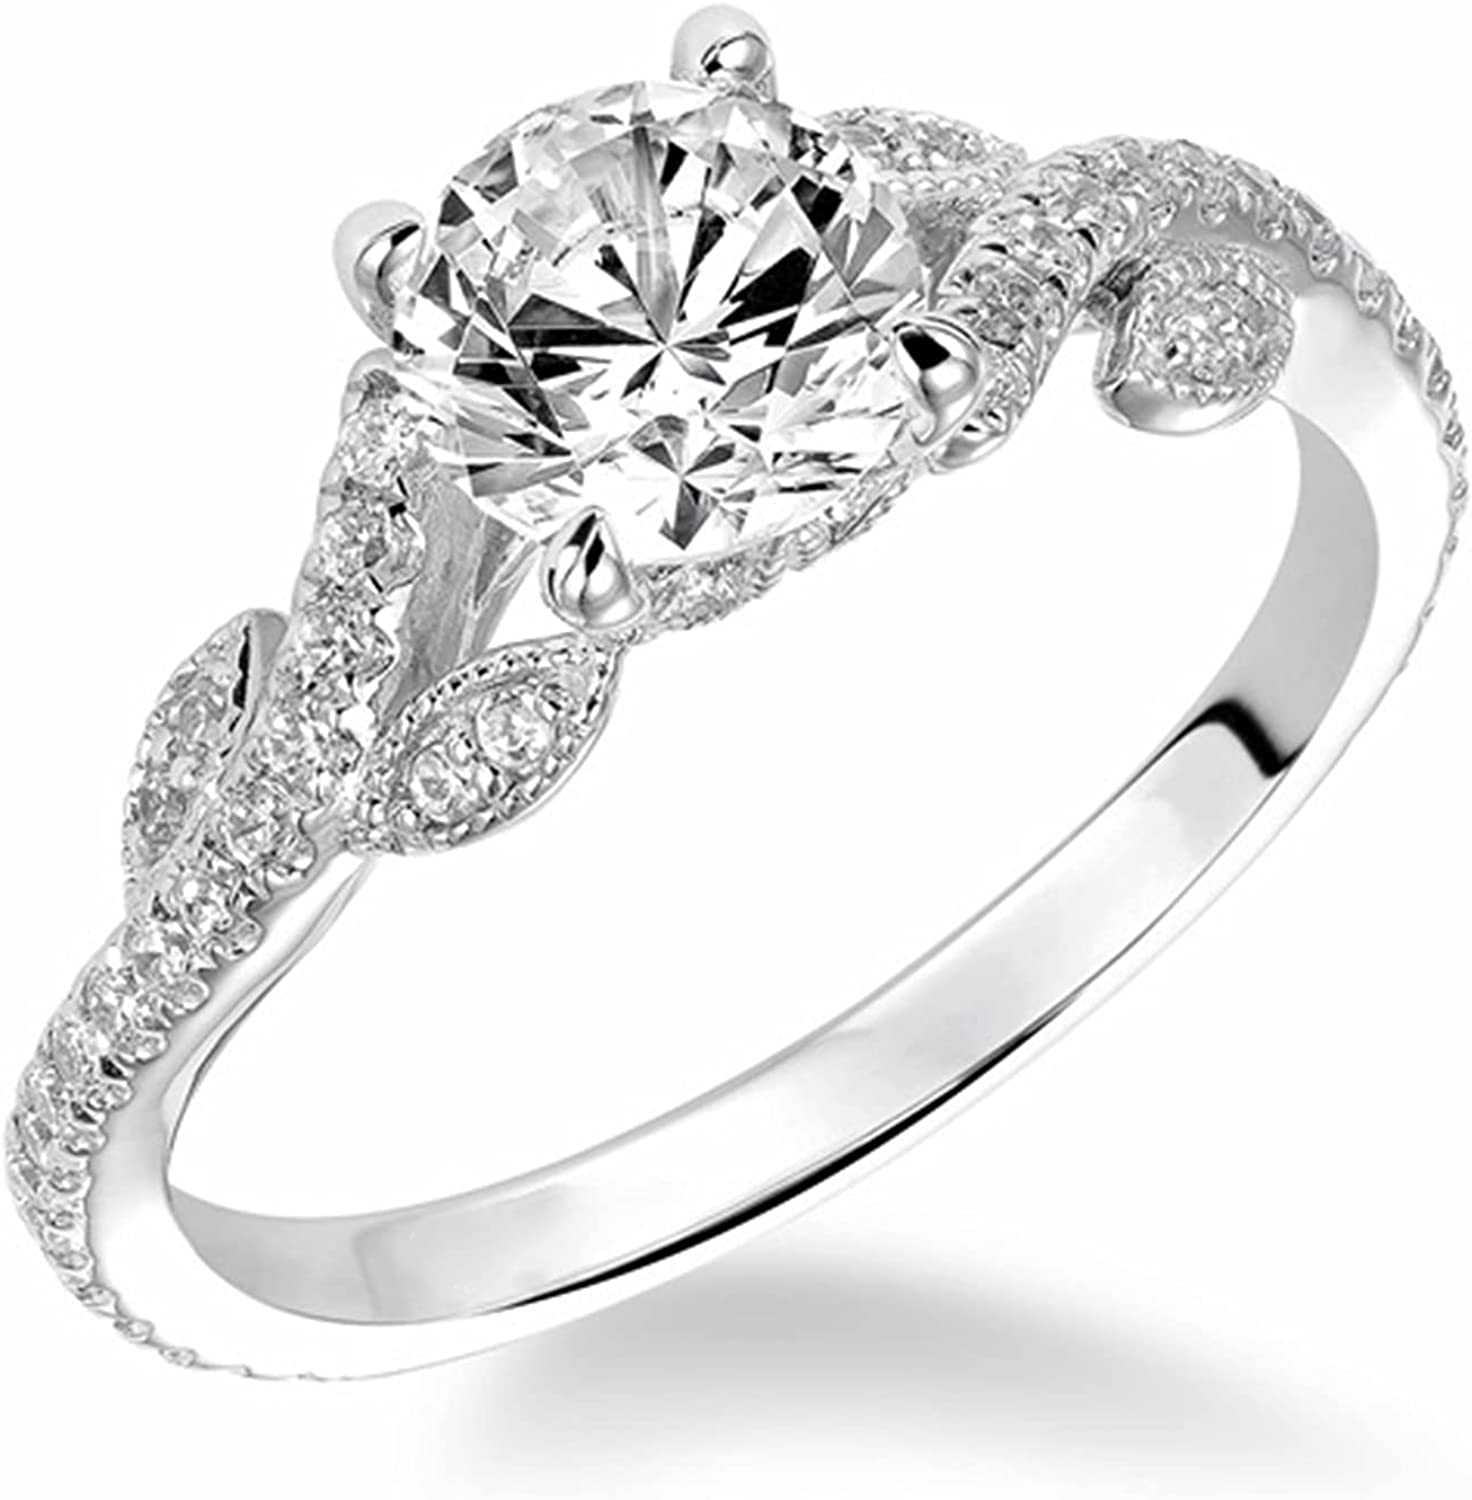 Twisted Engagement Rings for Women with 1-1/4 Carat(ctw) Moissanite Flower Engagement Rings 10K 14K 18K Gold Wedding Anniversary Rings with Text Engraving